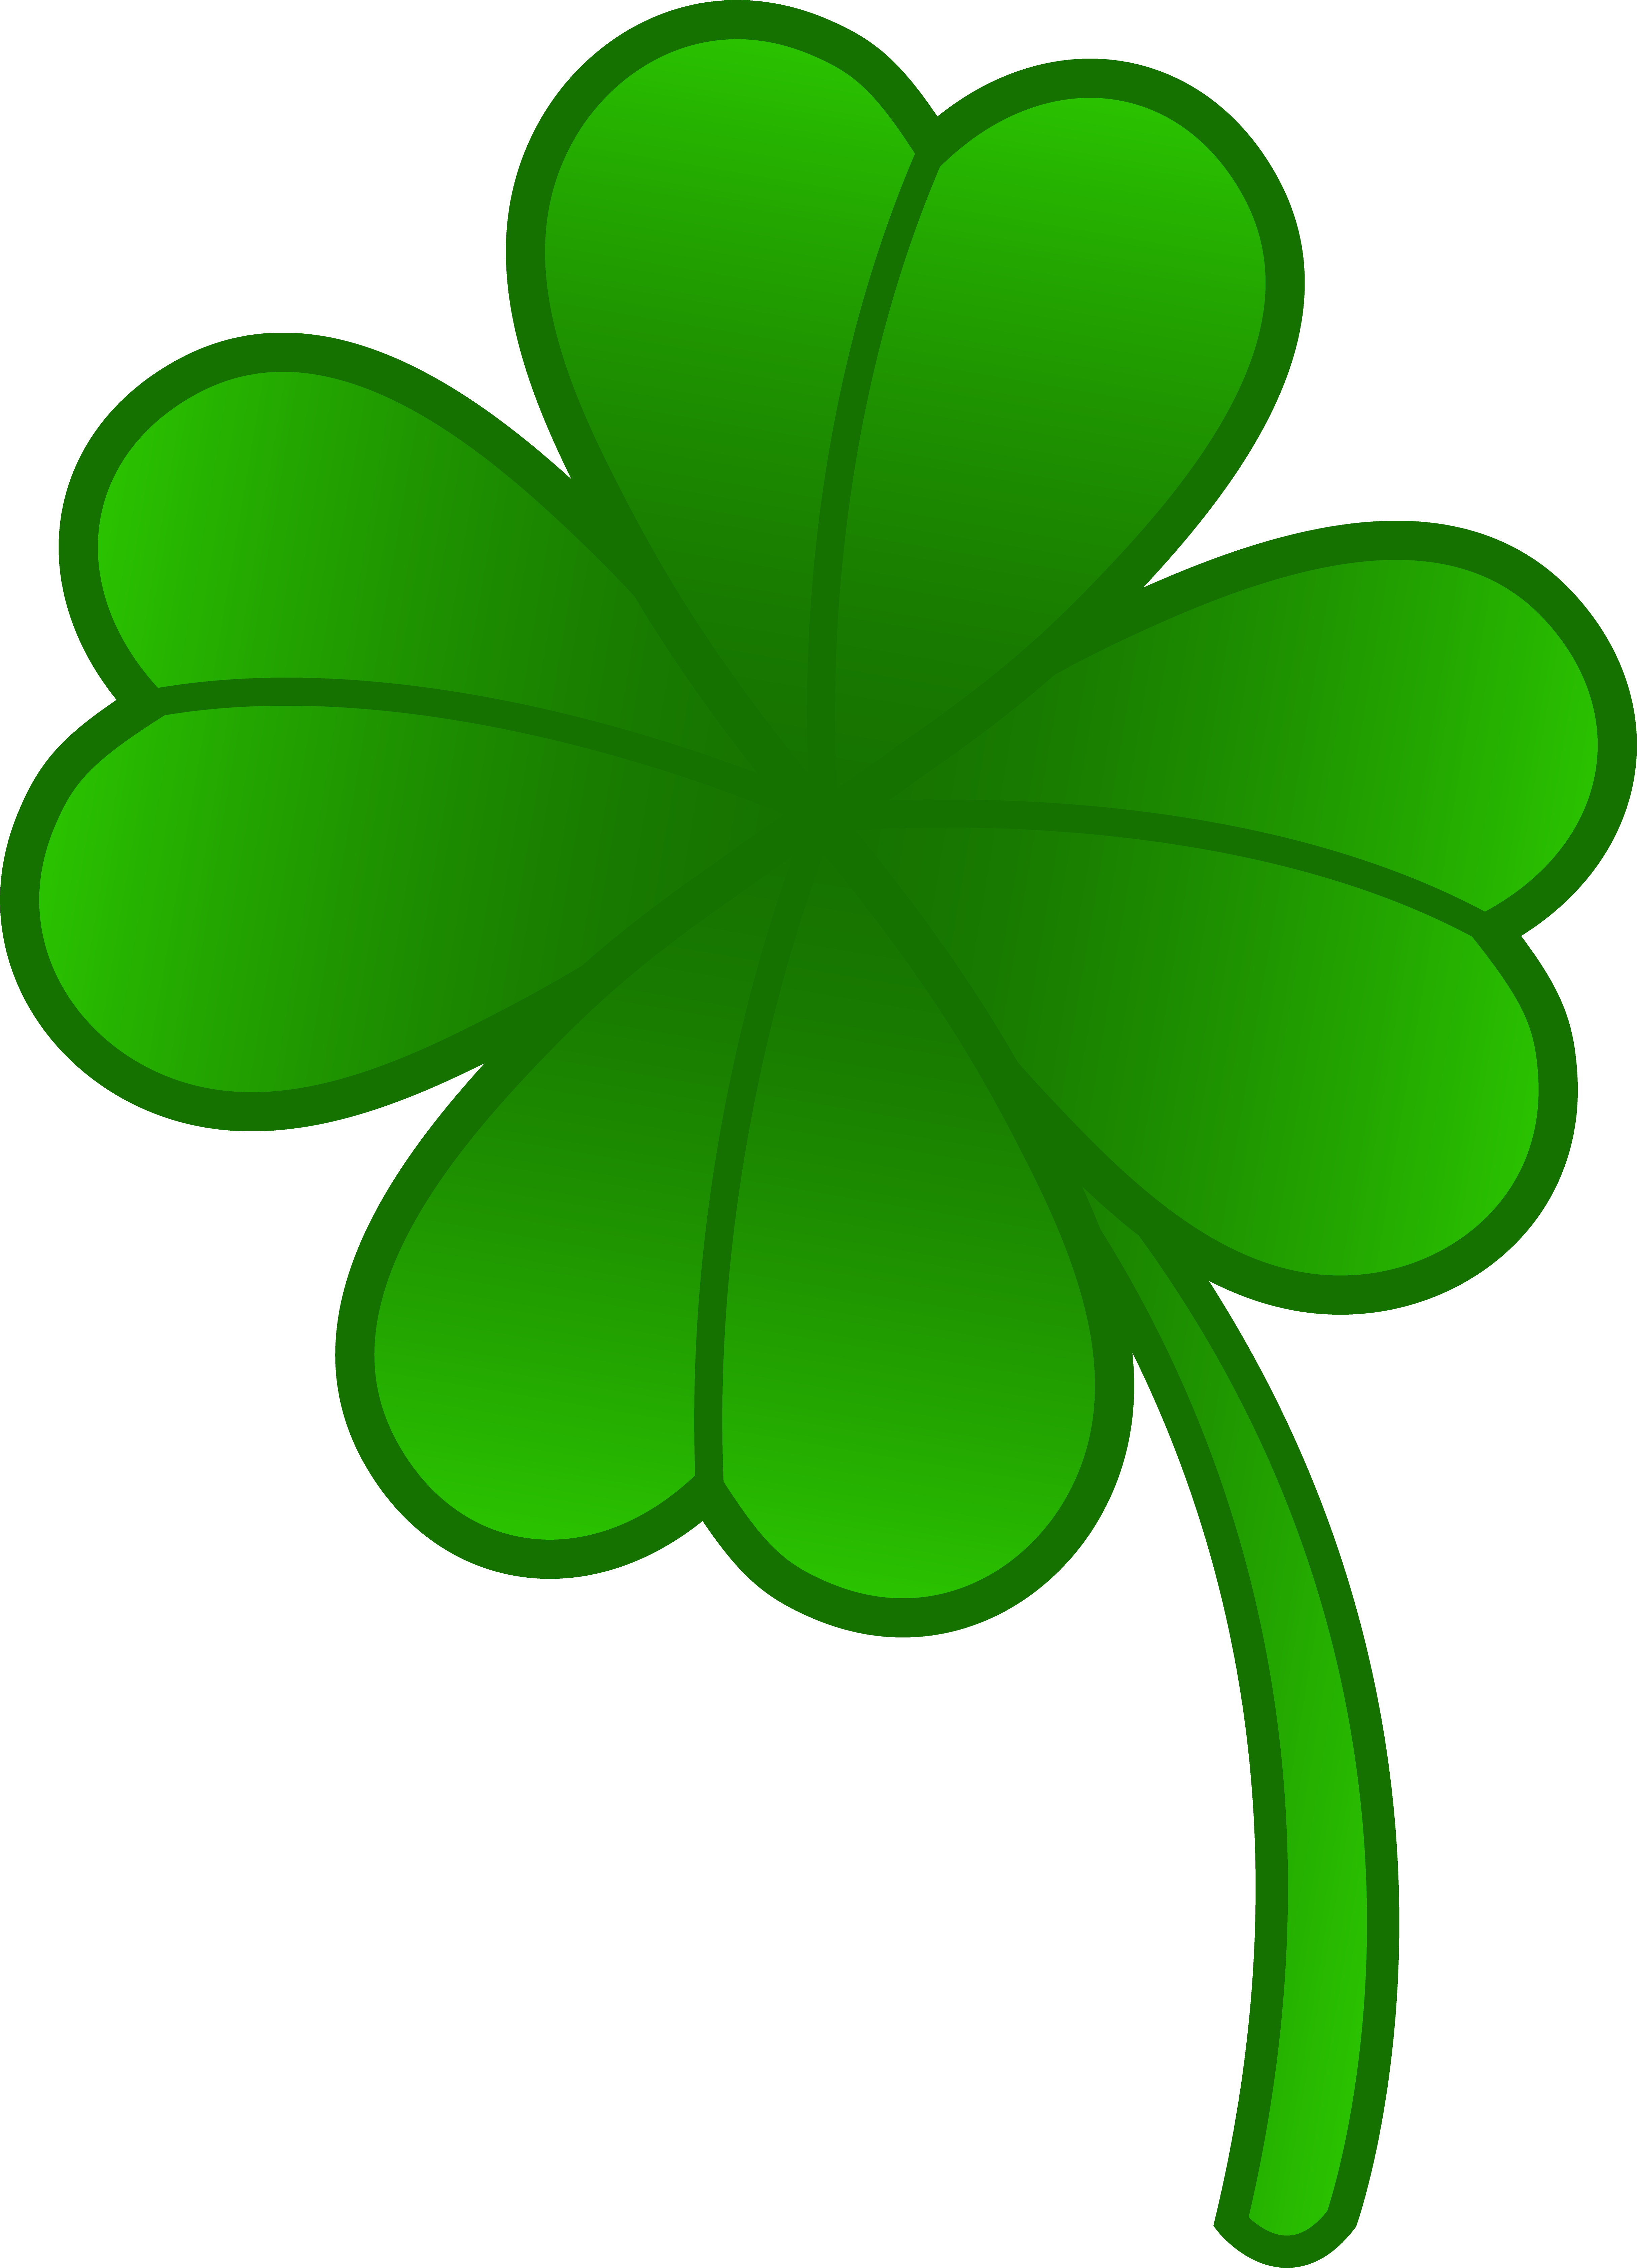 Green Four Leaf Clover - Free Clip Art